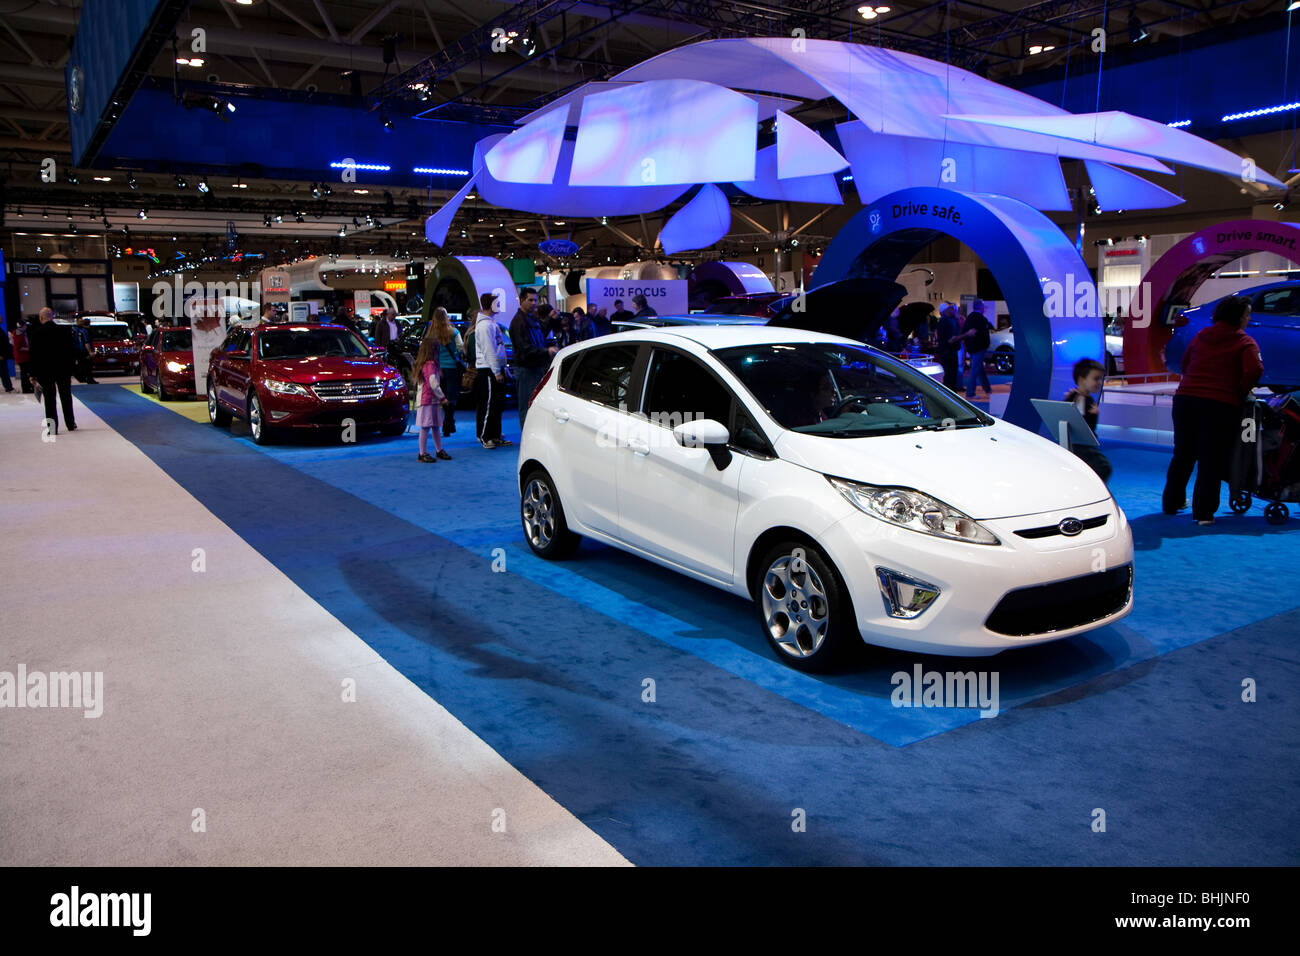 ford autoshow booth - Stock Image